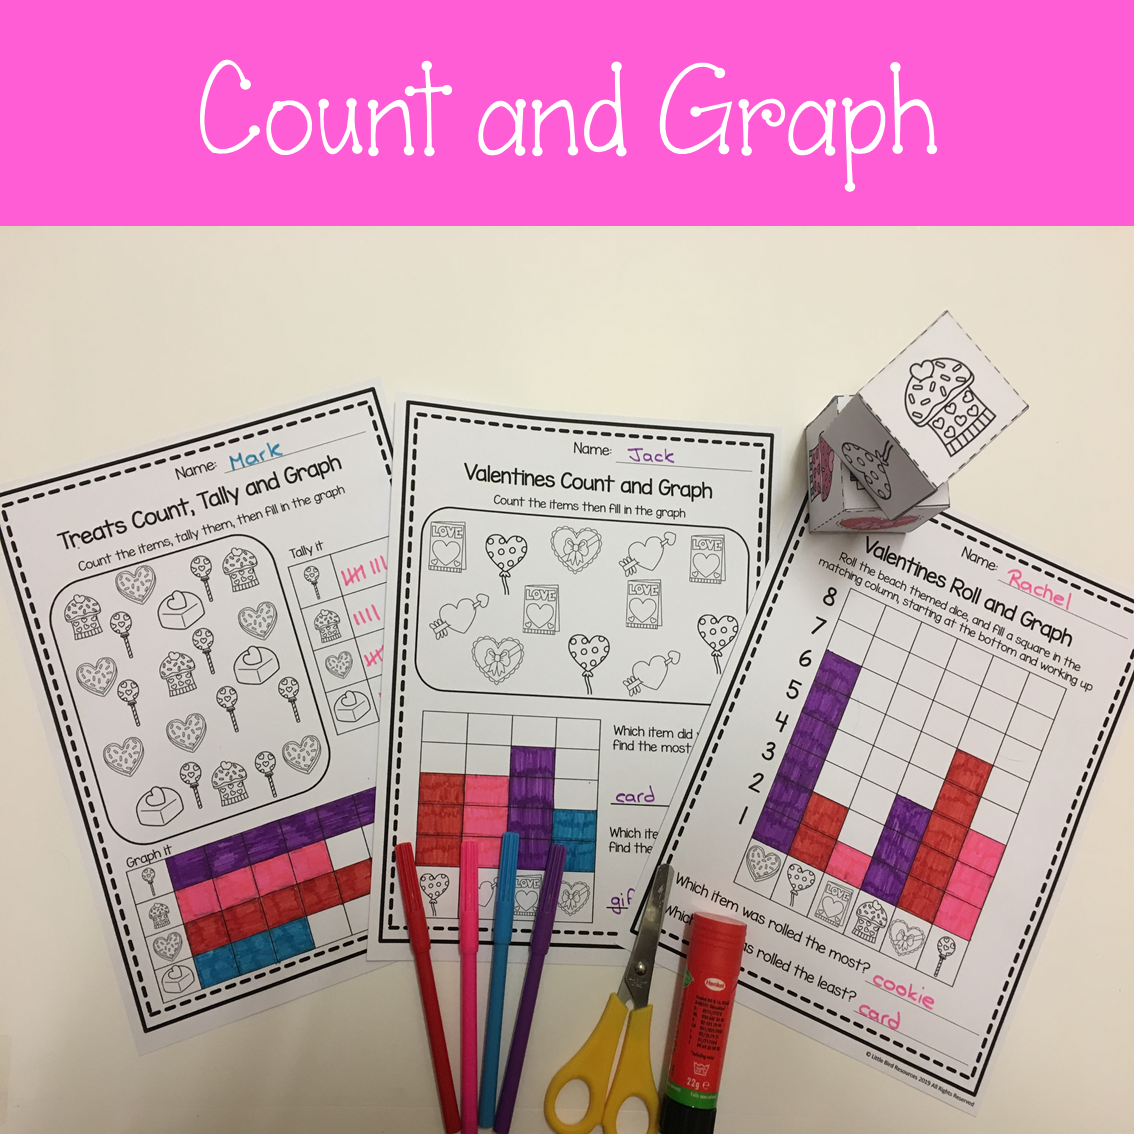 Valentines Roll Amp Graph Activity And Count Amp Graph